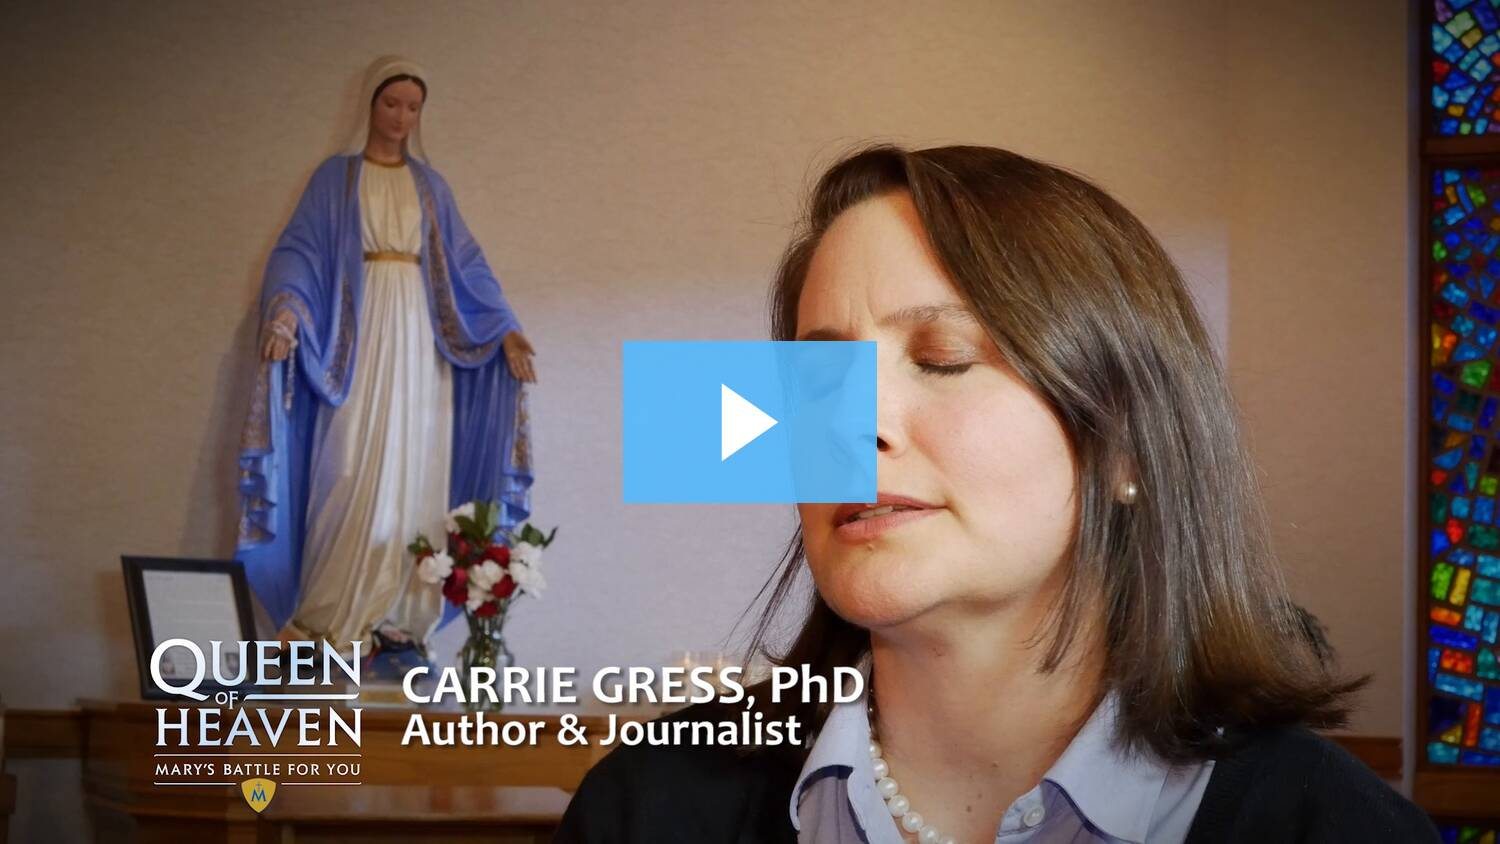 Dr. Carrie Gress